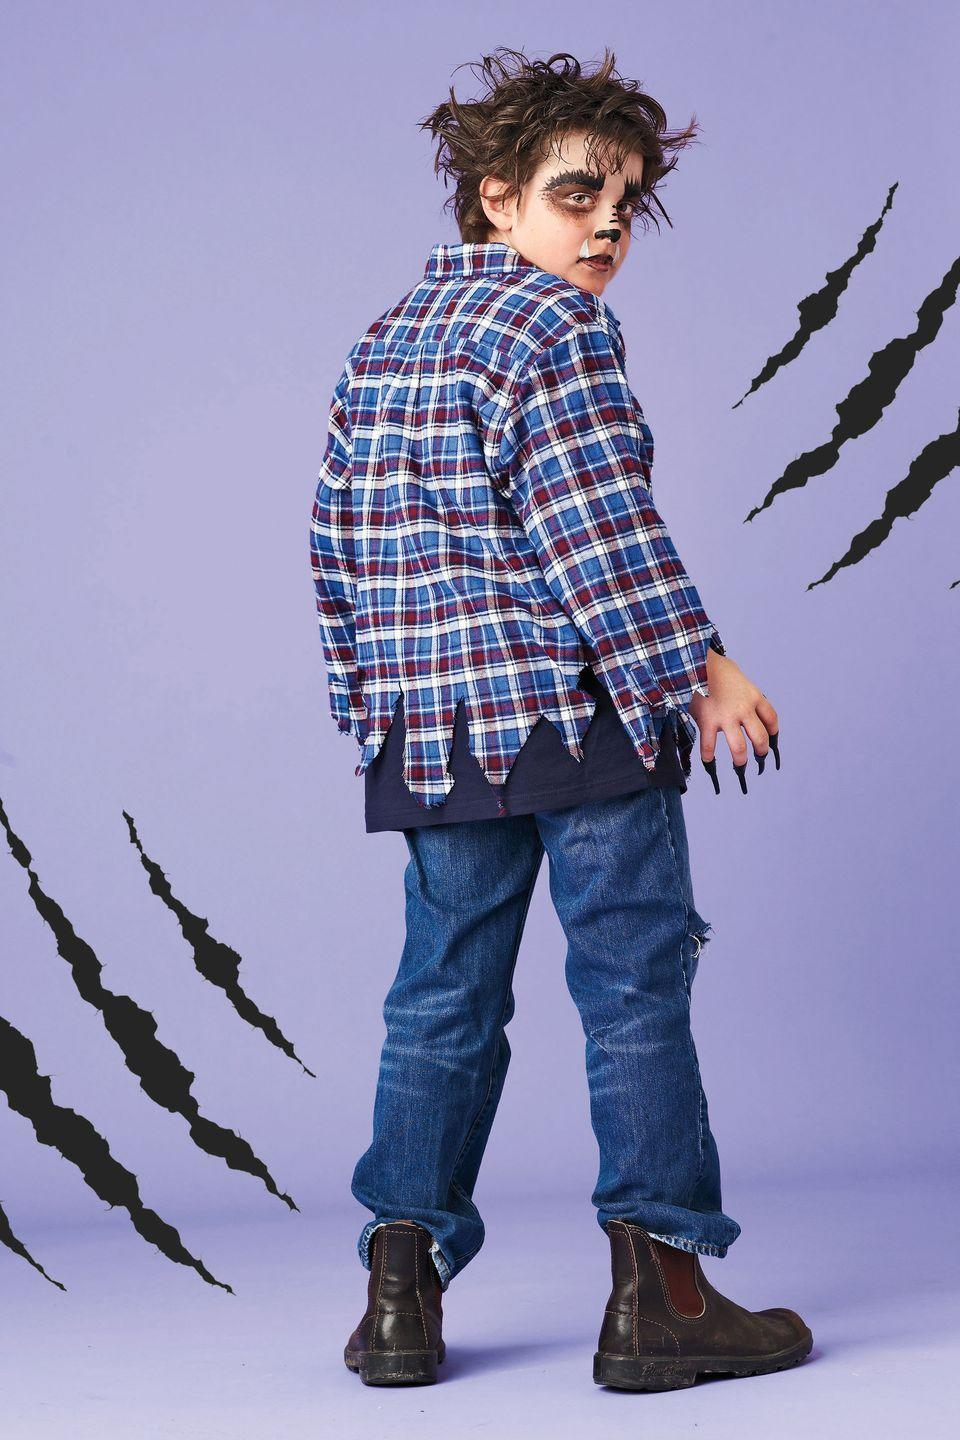 """<p>Tatter an old plaid shirt to complete the look for this shapeshifting character.</p><p><strong><em><a href=""""https://www.womansday.com/home/crafts-projects/how-to/a5248/halloween-costume-how-to-wandering-wolfman-110895/"""" rel=""""nofollow noopener"""" target=""""_blank"""" data-ylk=""""slk:Get the Werewolf tutorial."""" class=""""link rapid-noclick-resp"""">Get the Werewolf tutorial.</a></em></strong></p>"""